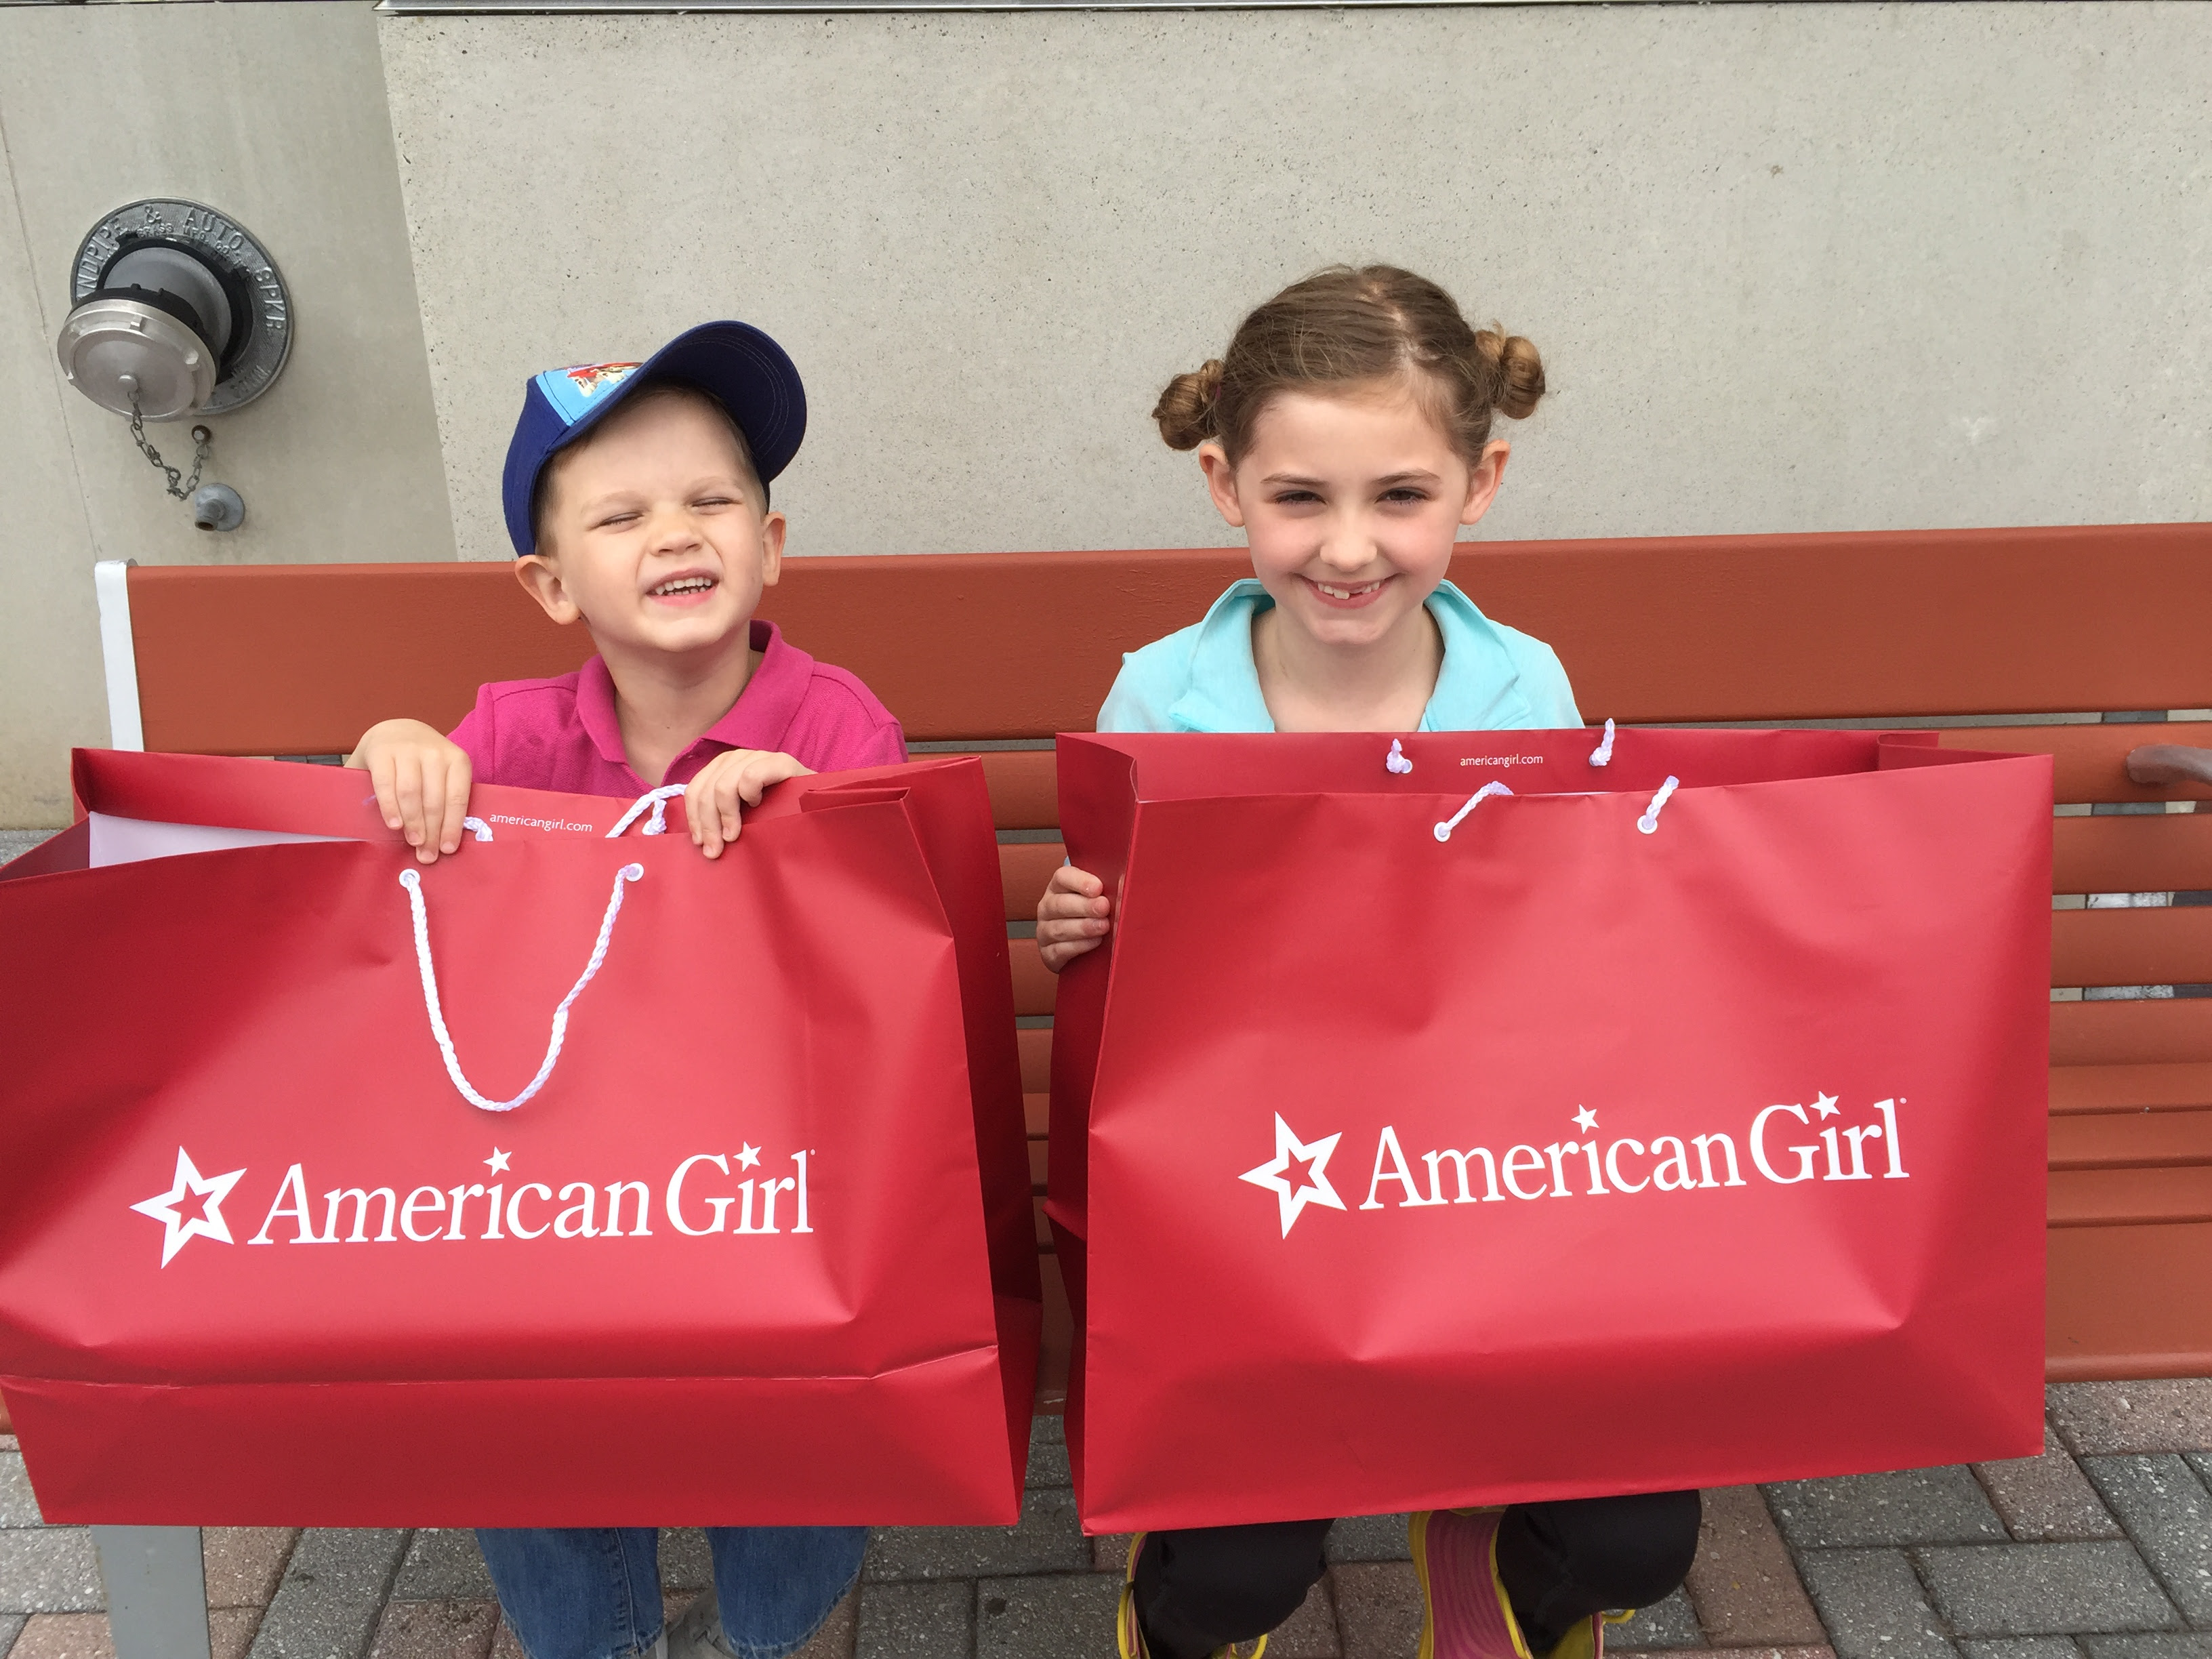 brother and sister with american girl doll bags